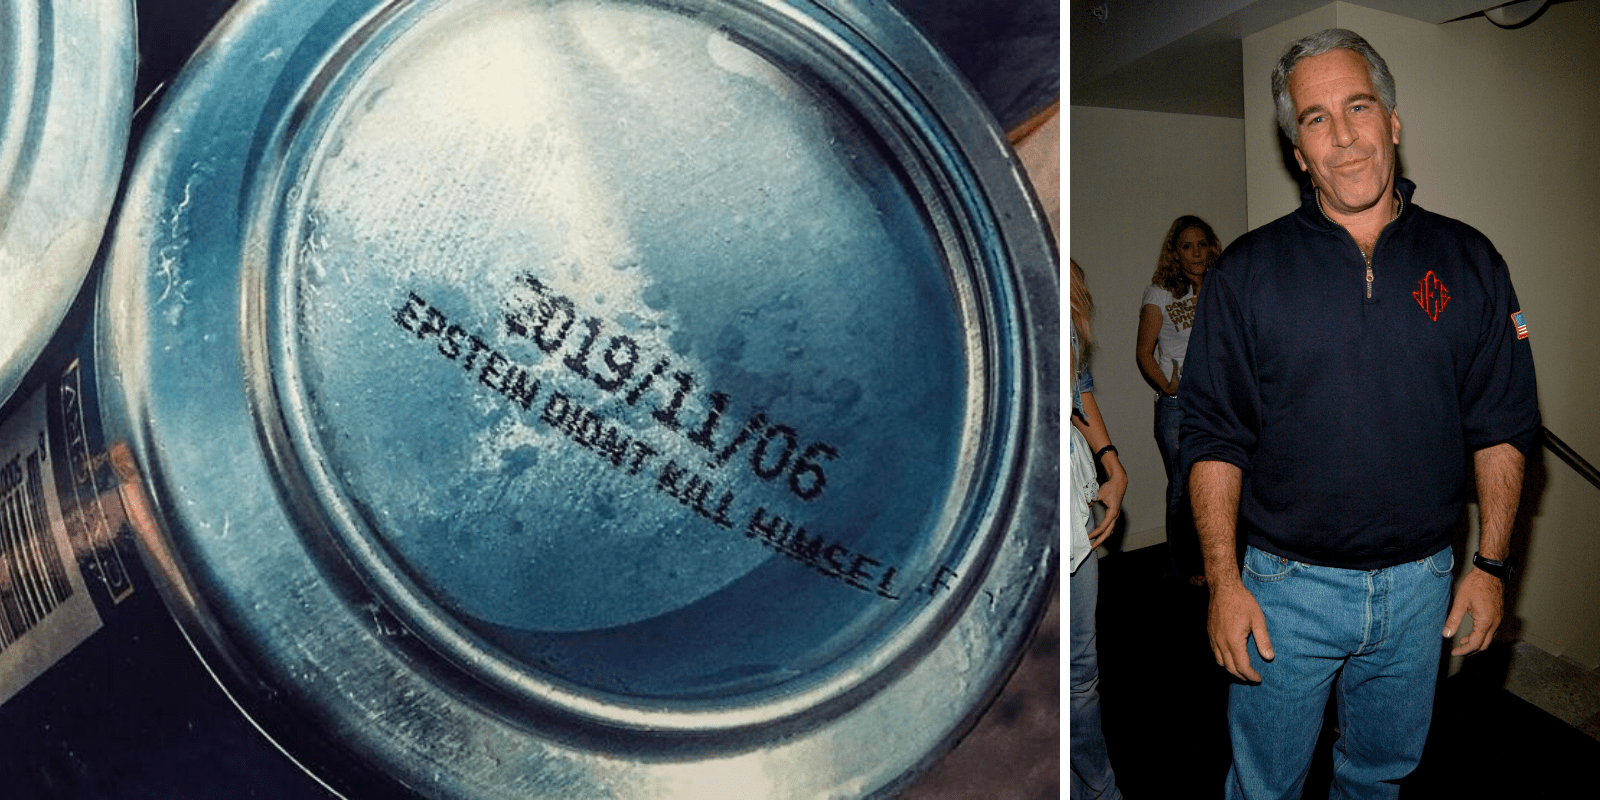 EPSTEIN DIDN'T KILL HIMSELF: Brewery releases secret message on beer cans